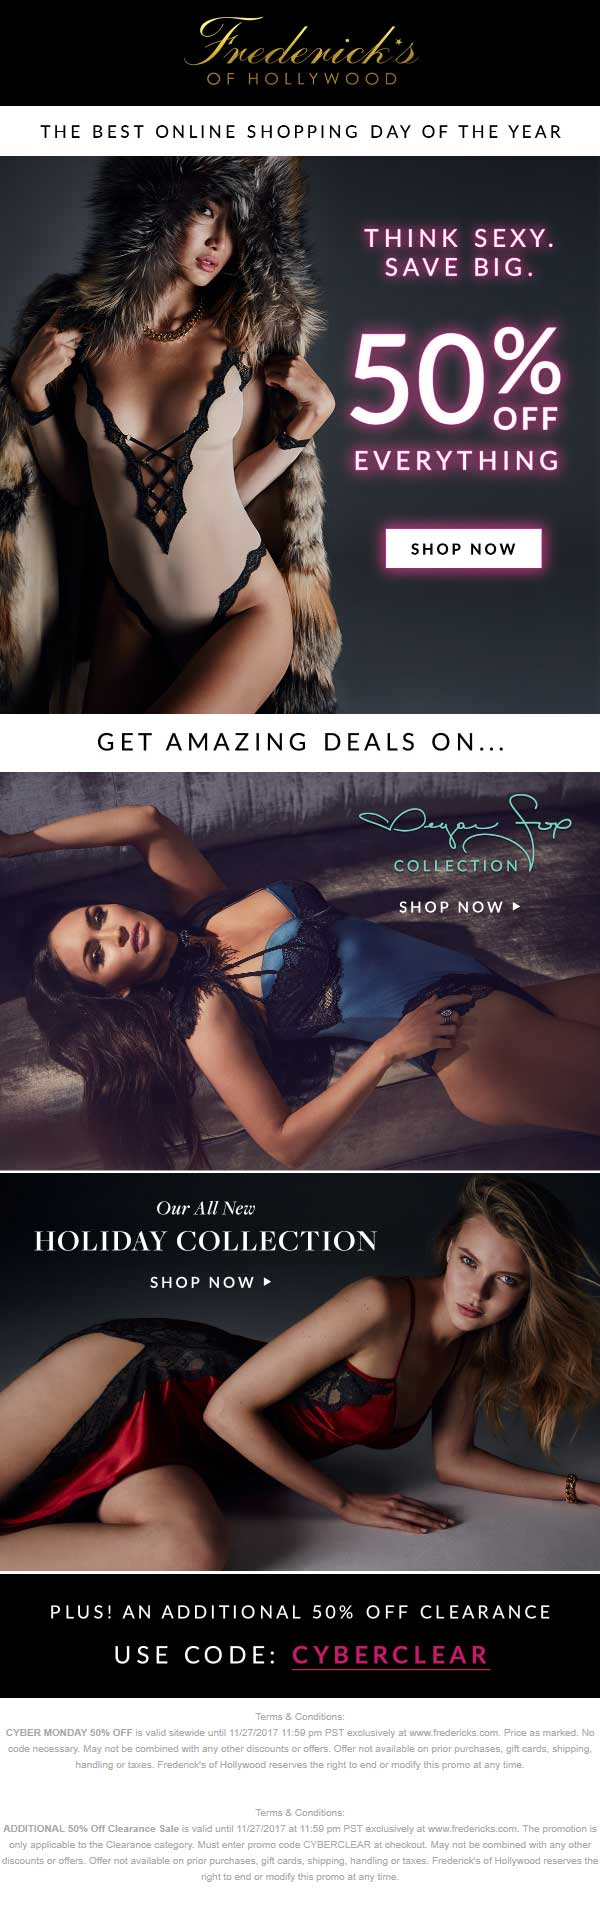 Fredericks of Hollywood Coupon October 2018 50% off everything online today at Fredericks of Hollywood + extra 50% off clearance via promo code CYBERCLEAR